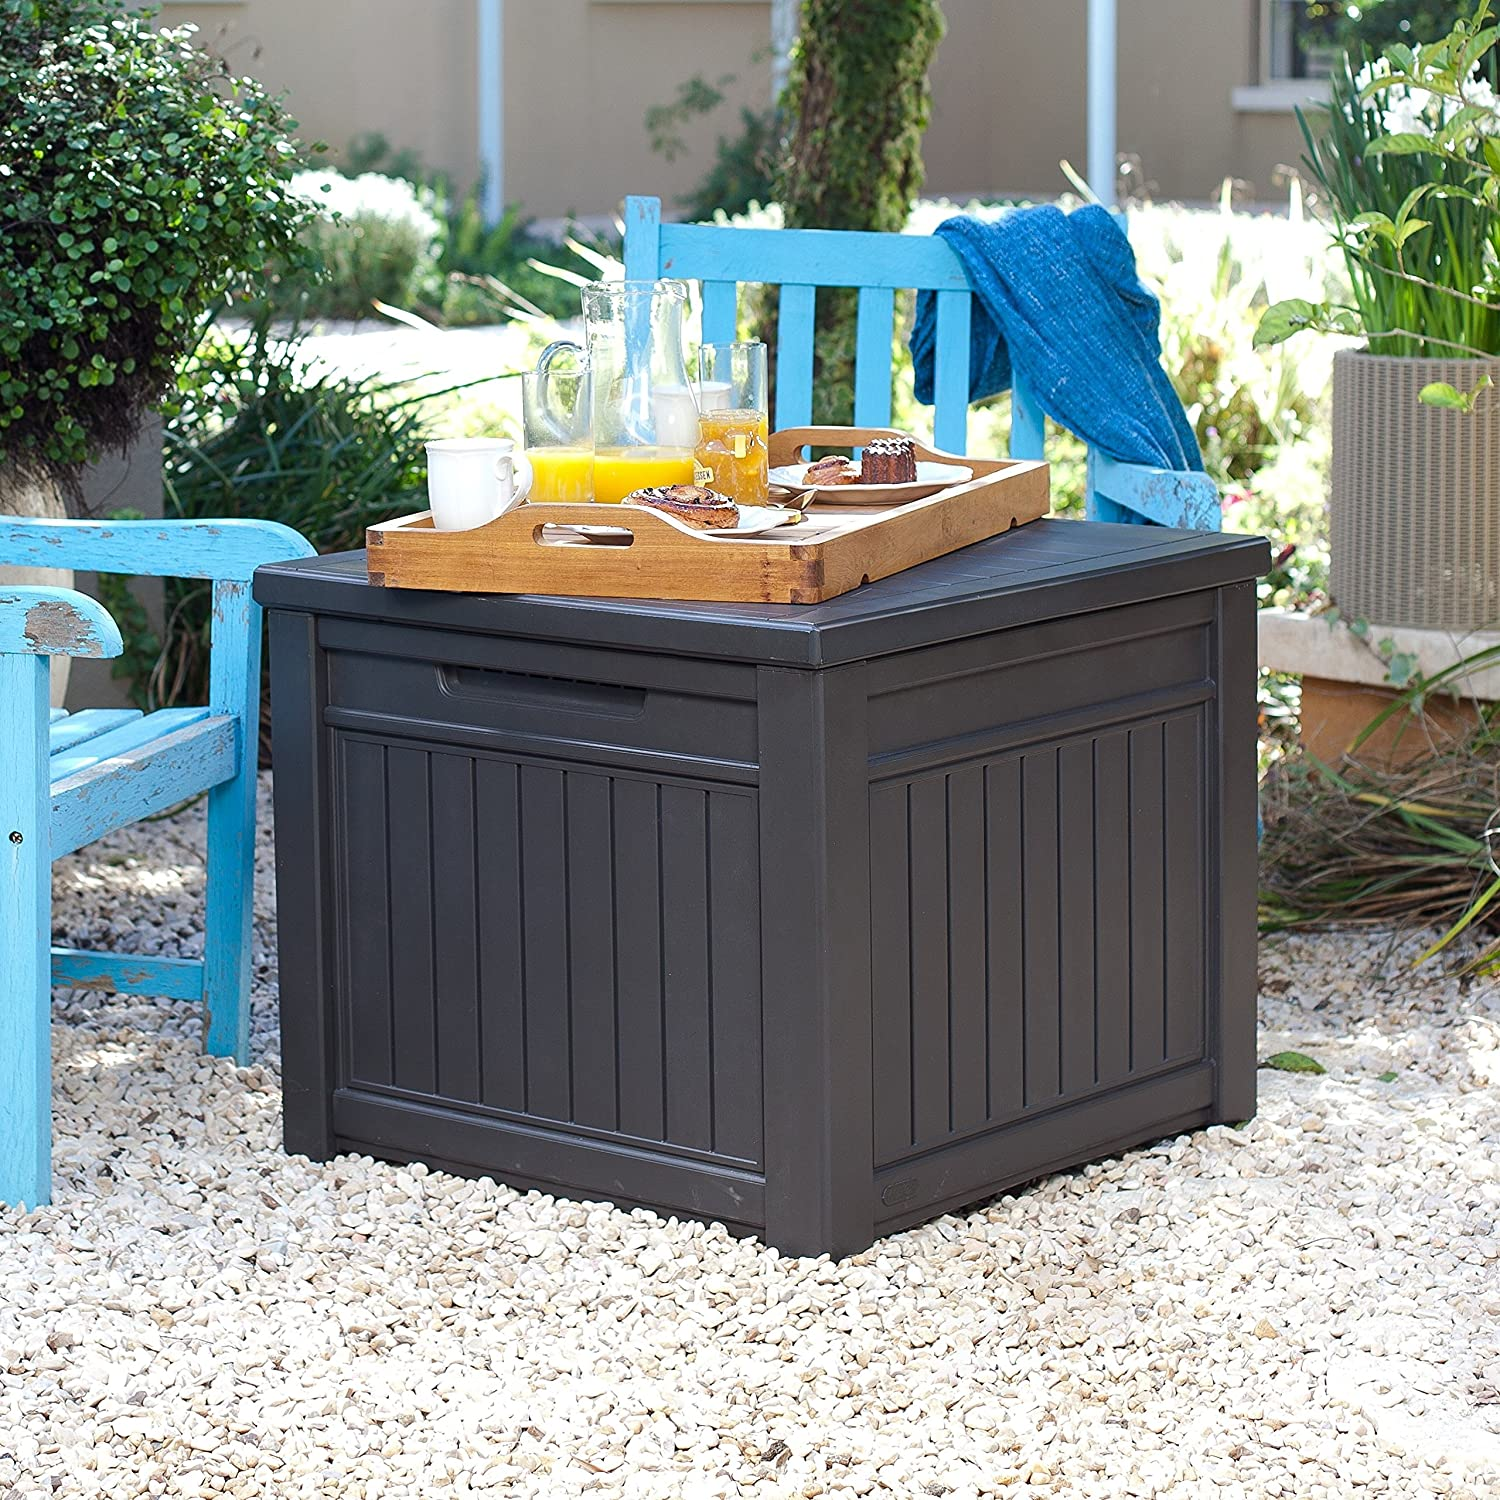 Wonderful Amazon.com : Keter Cube Wood Look 55 Gallon All Weather Garden Patio Storage  Table Or Bench : Patio, Lawn U0026 Garden